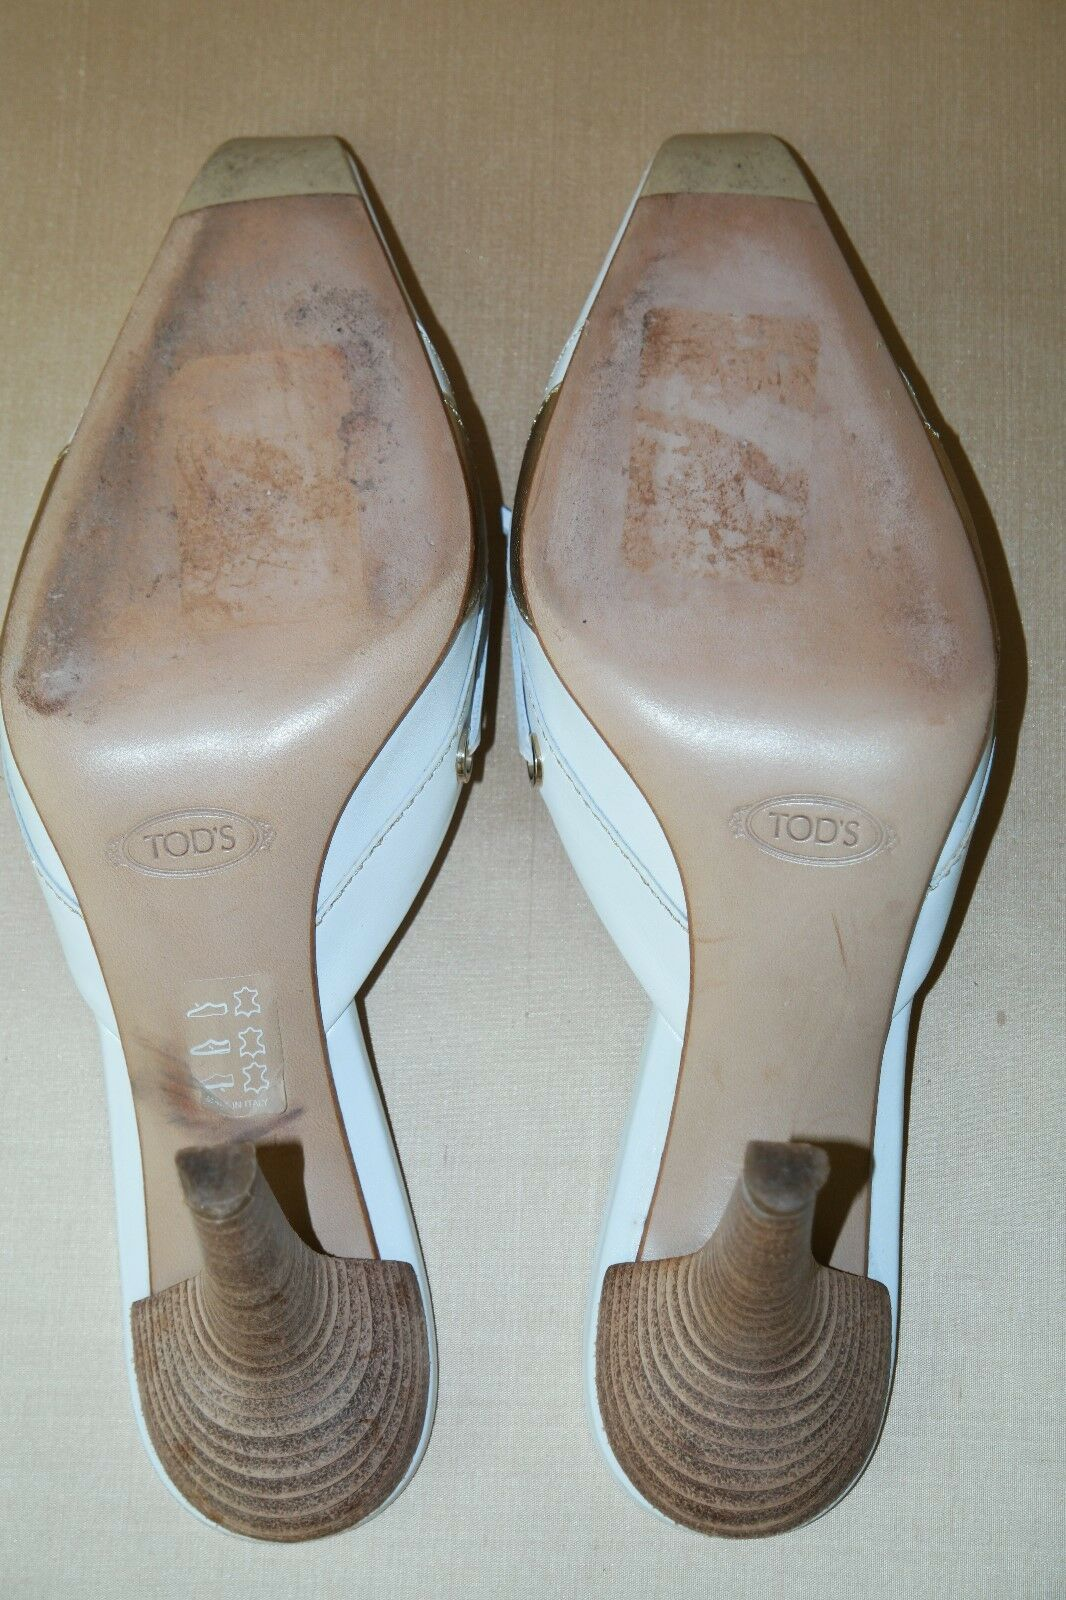 TOD'S MADE IN ITALY MULES WEISS LEATHER+ GOLD DETAIL MULES ITALY SIZE US 9 b13f3f